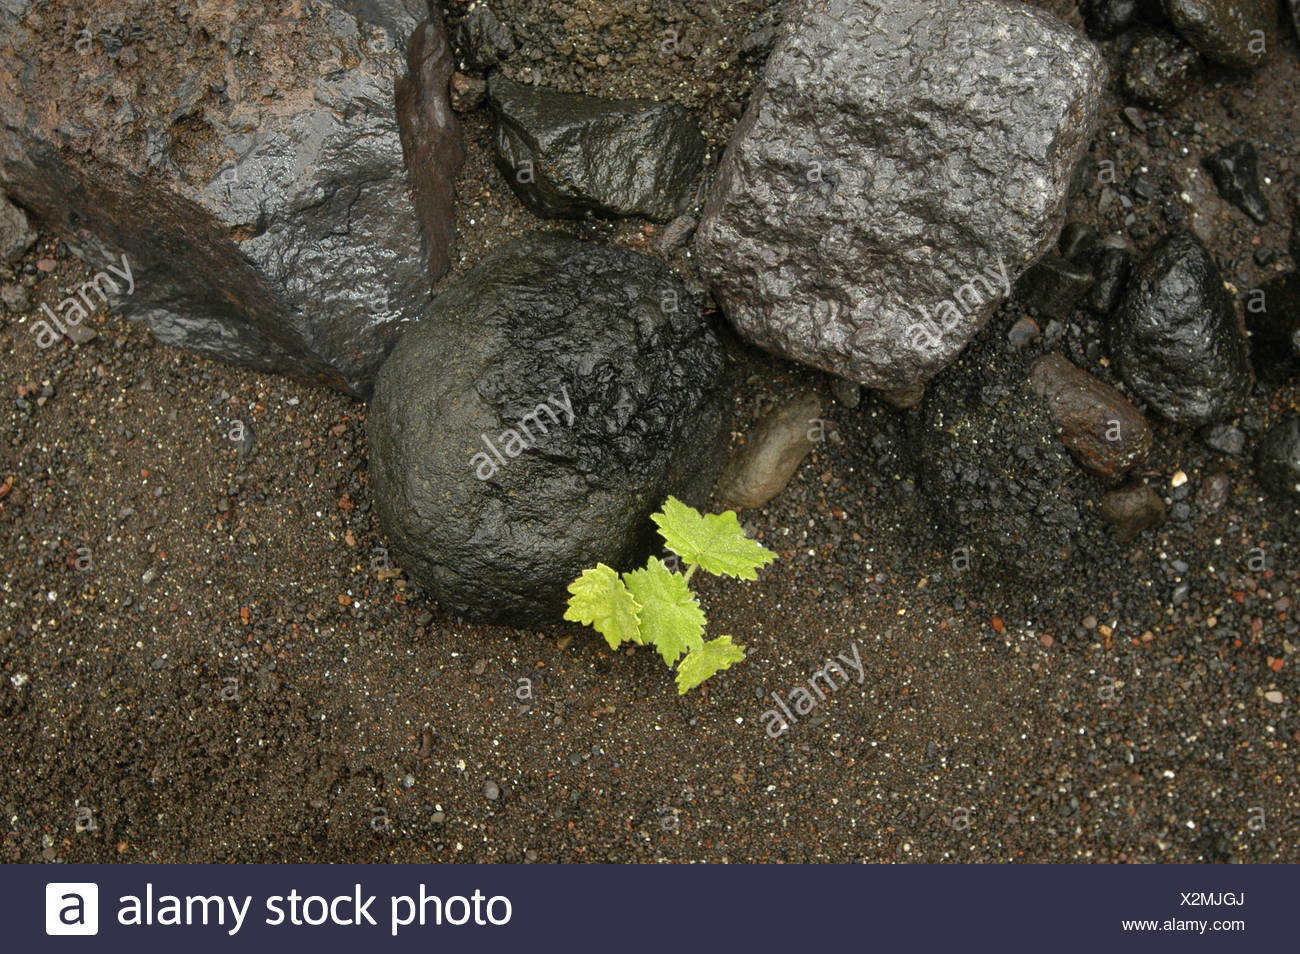 leaves rocks cliffs contrast opposition gray green Ile de la Reunion Indian ocean gravel contrast plant - Stock Image